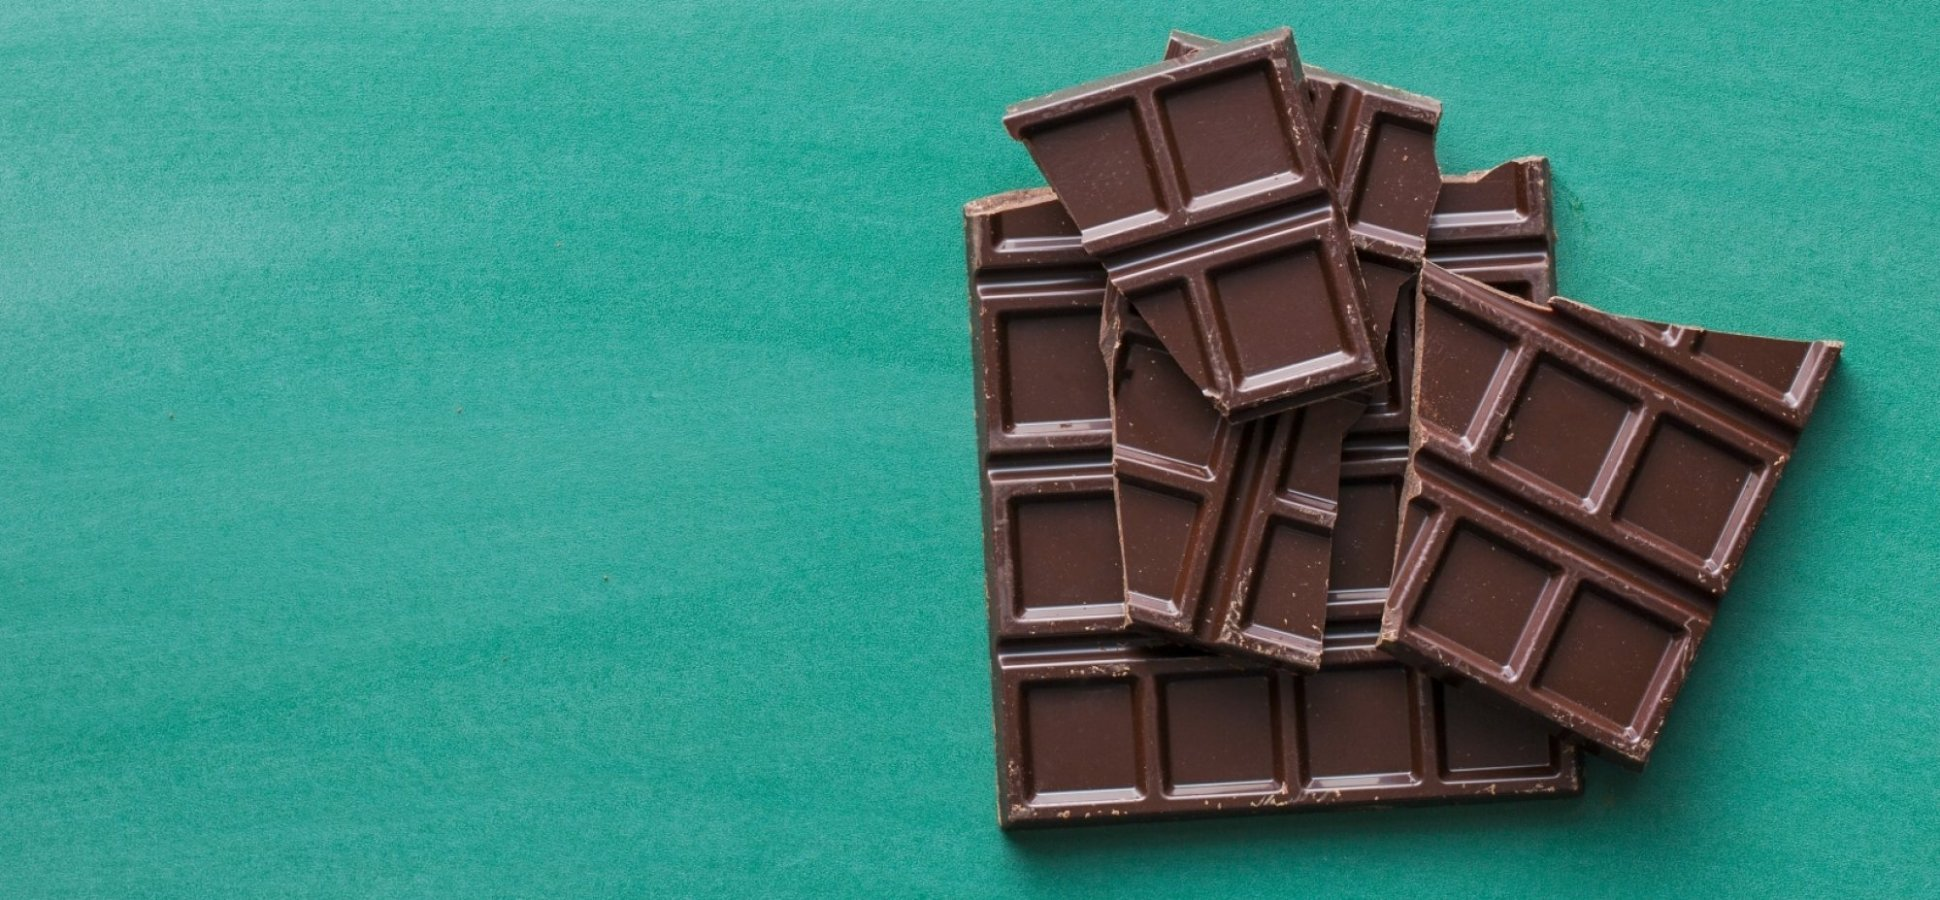 Scientists Just Discovered That Eating Chocolate Has an Amazing Effect on Happiness. But There Is a (Literally) Small Catch